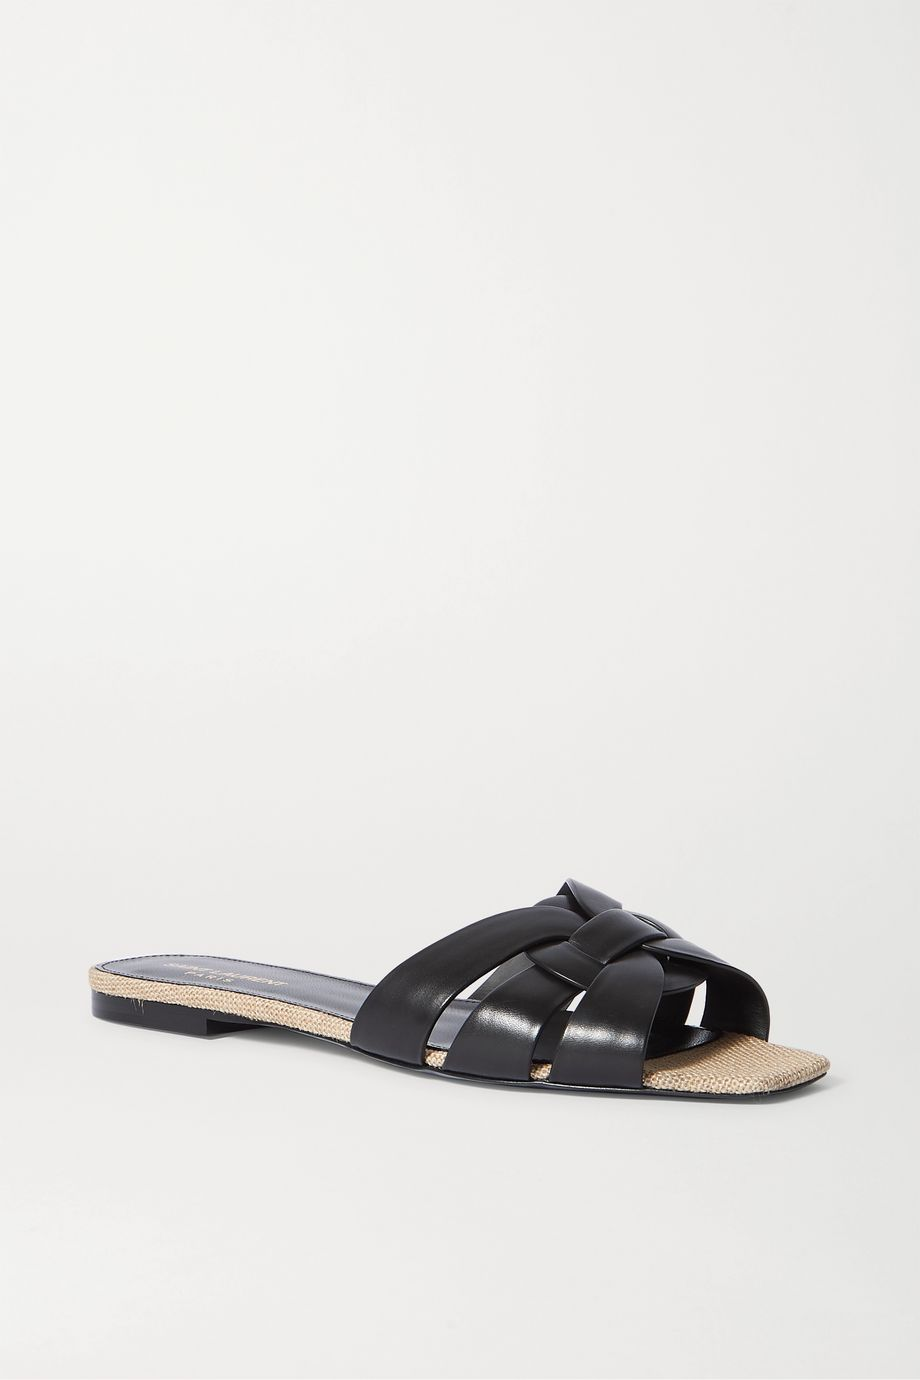 SAINT LAURENT Nu Pieds woven leather and canvas slides